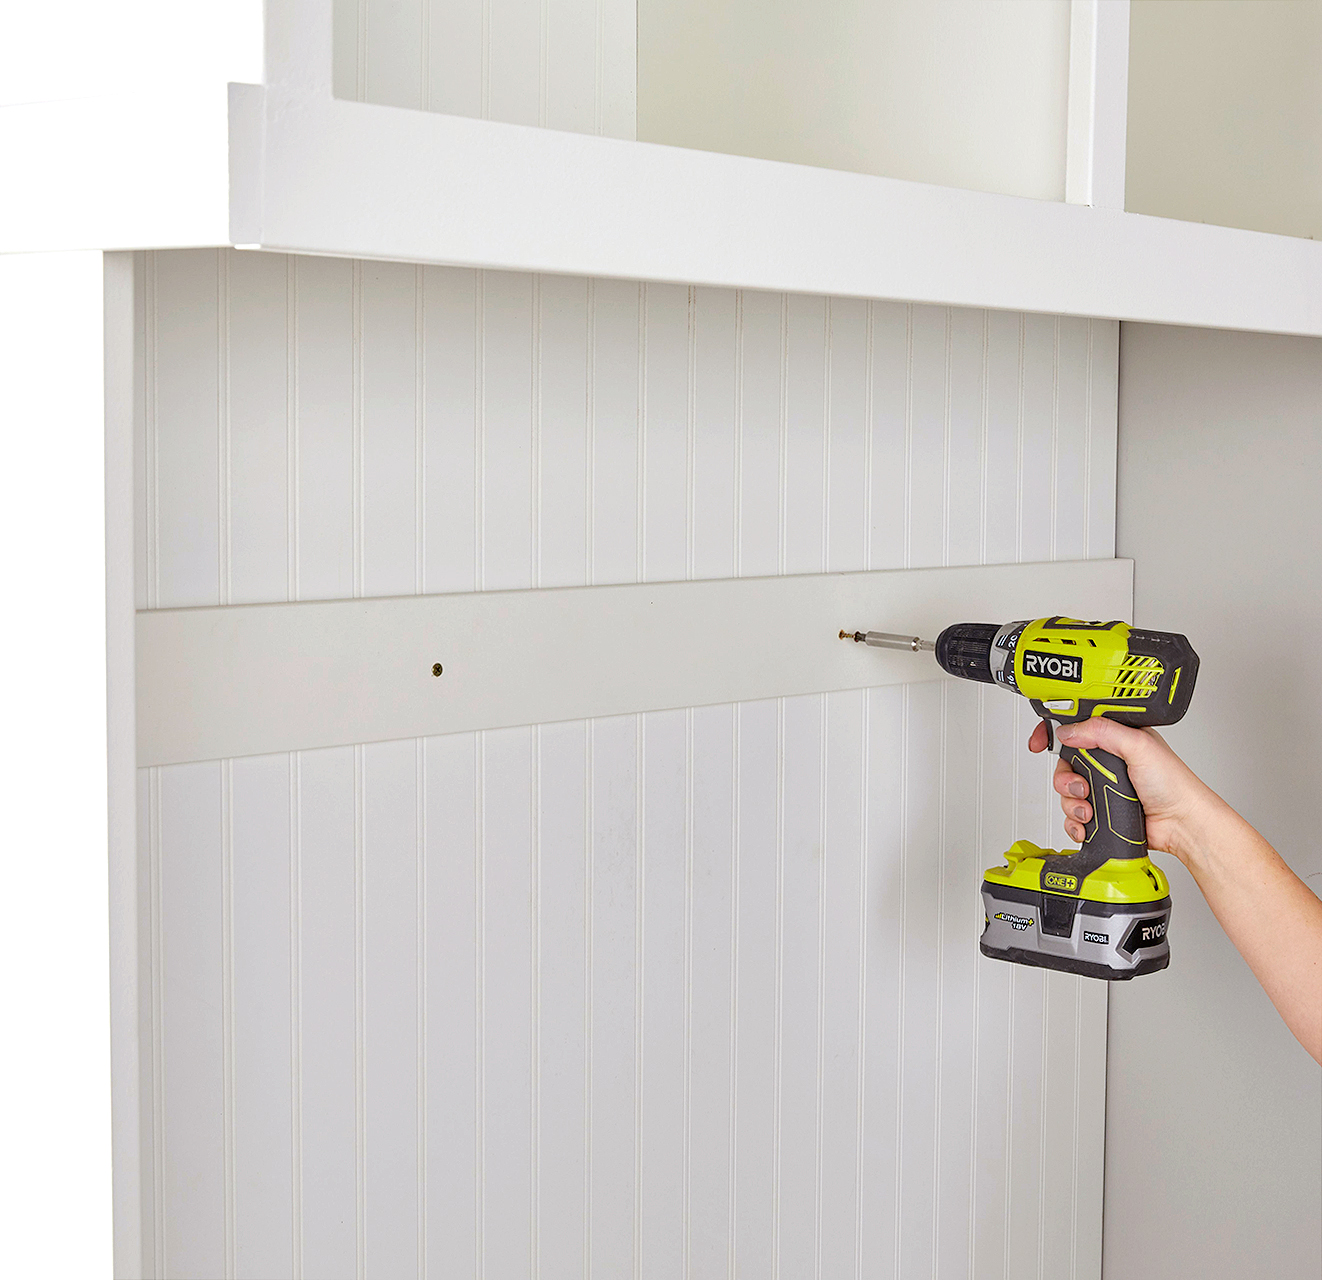 install panel atop beadboard for hook placement